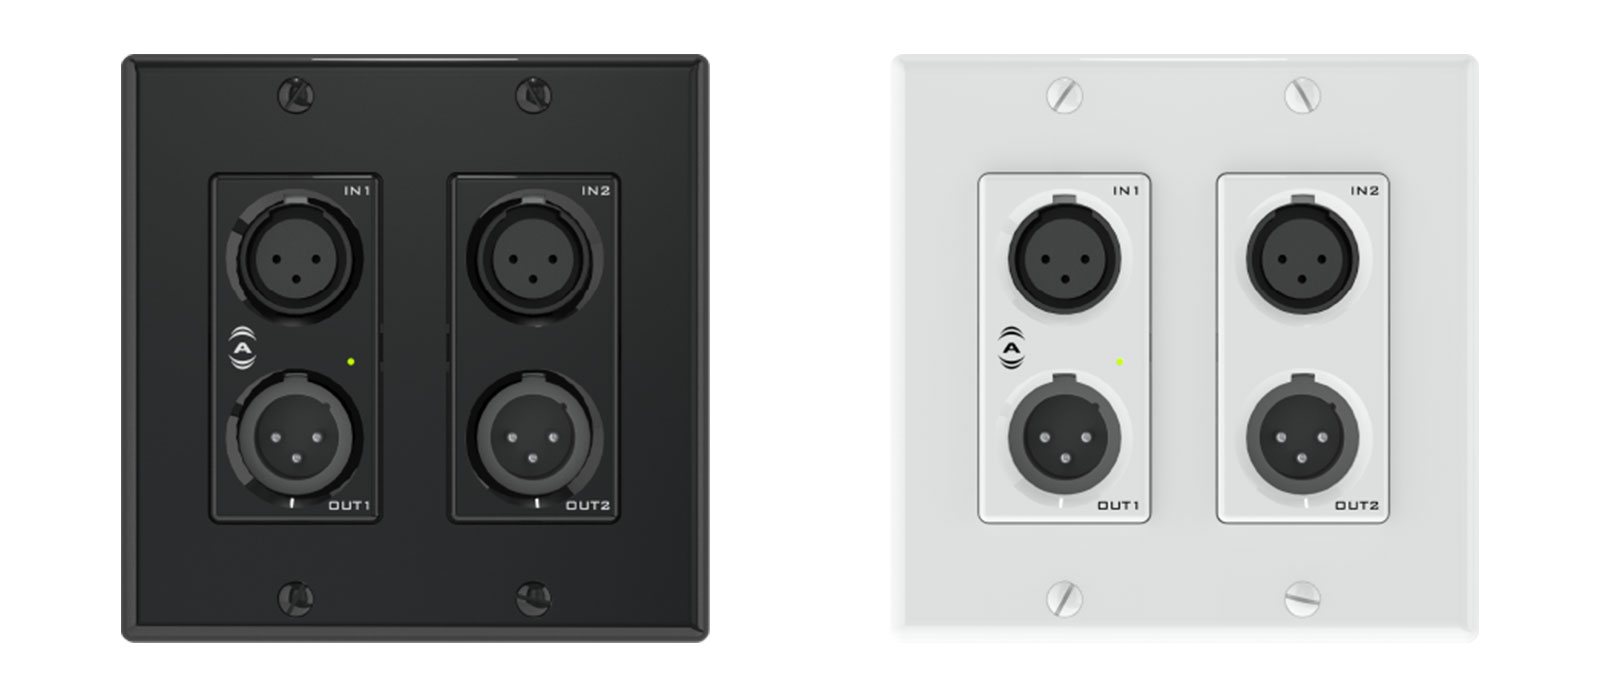 Undx2io At Wall Mount Network Audio Interfaces Attero Tech Products Peripherals Accessories Q Sys Ecosystem Products Systems Qsc